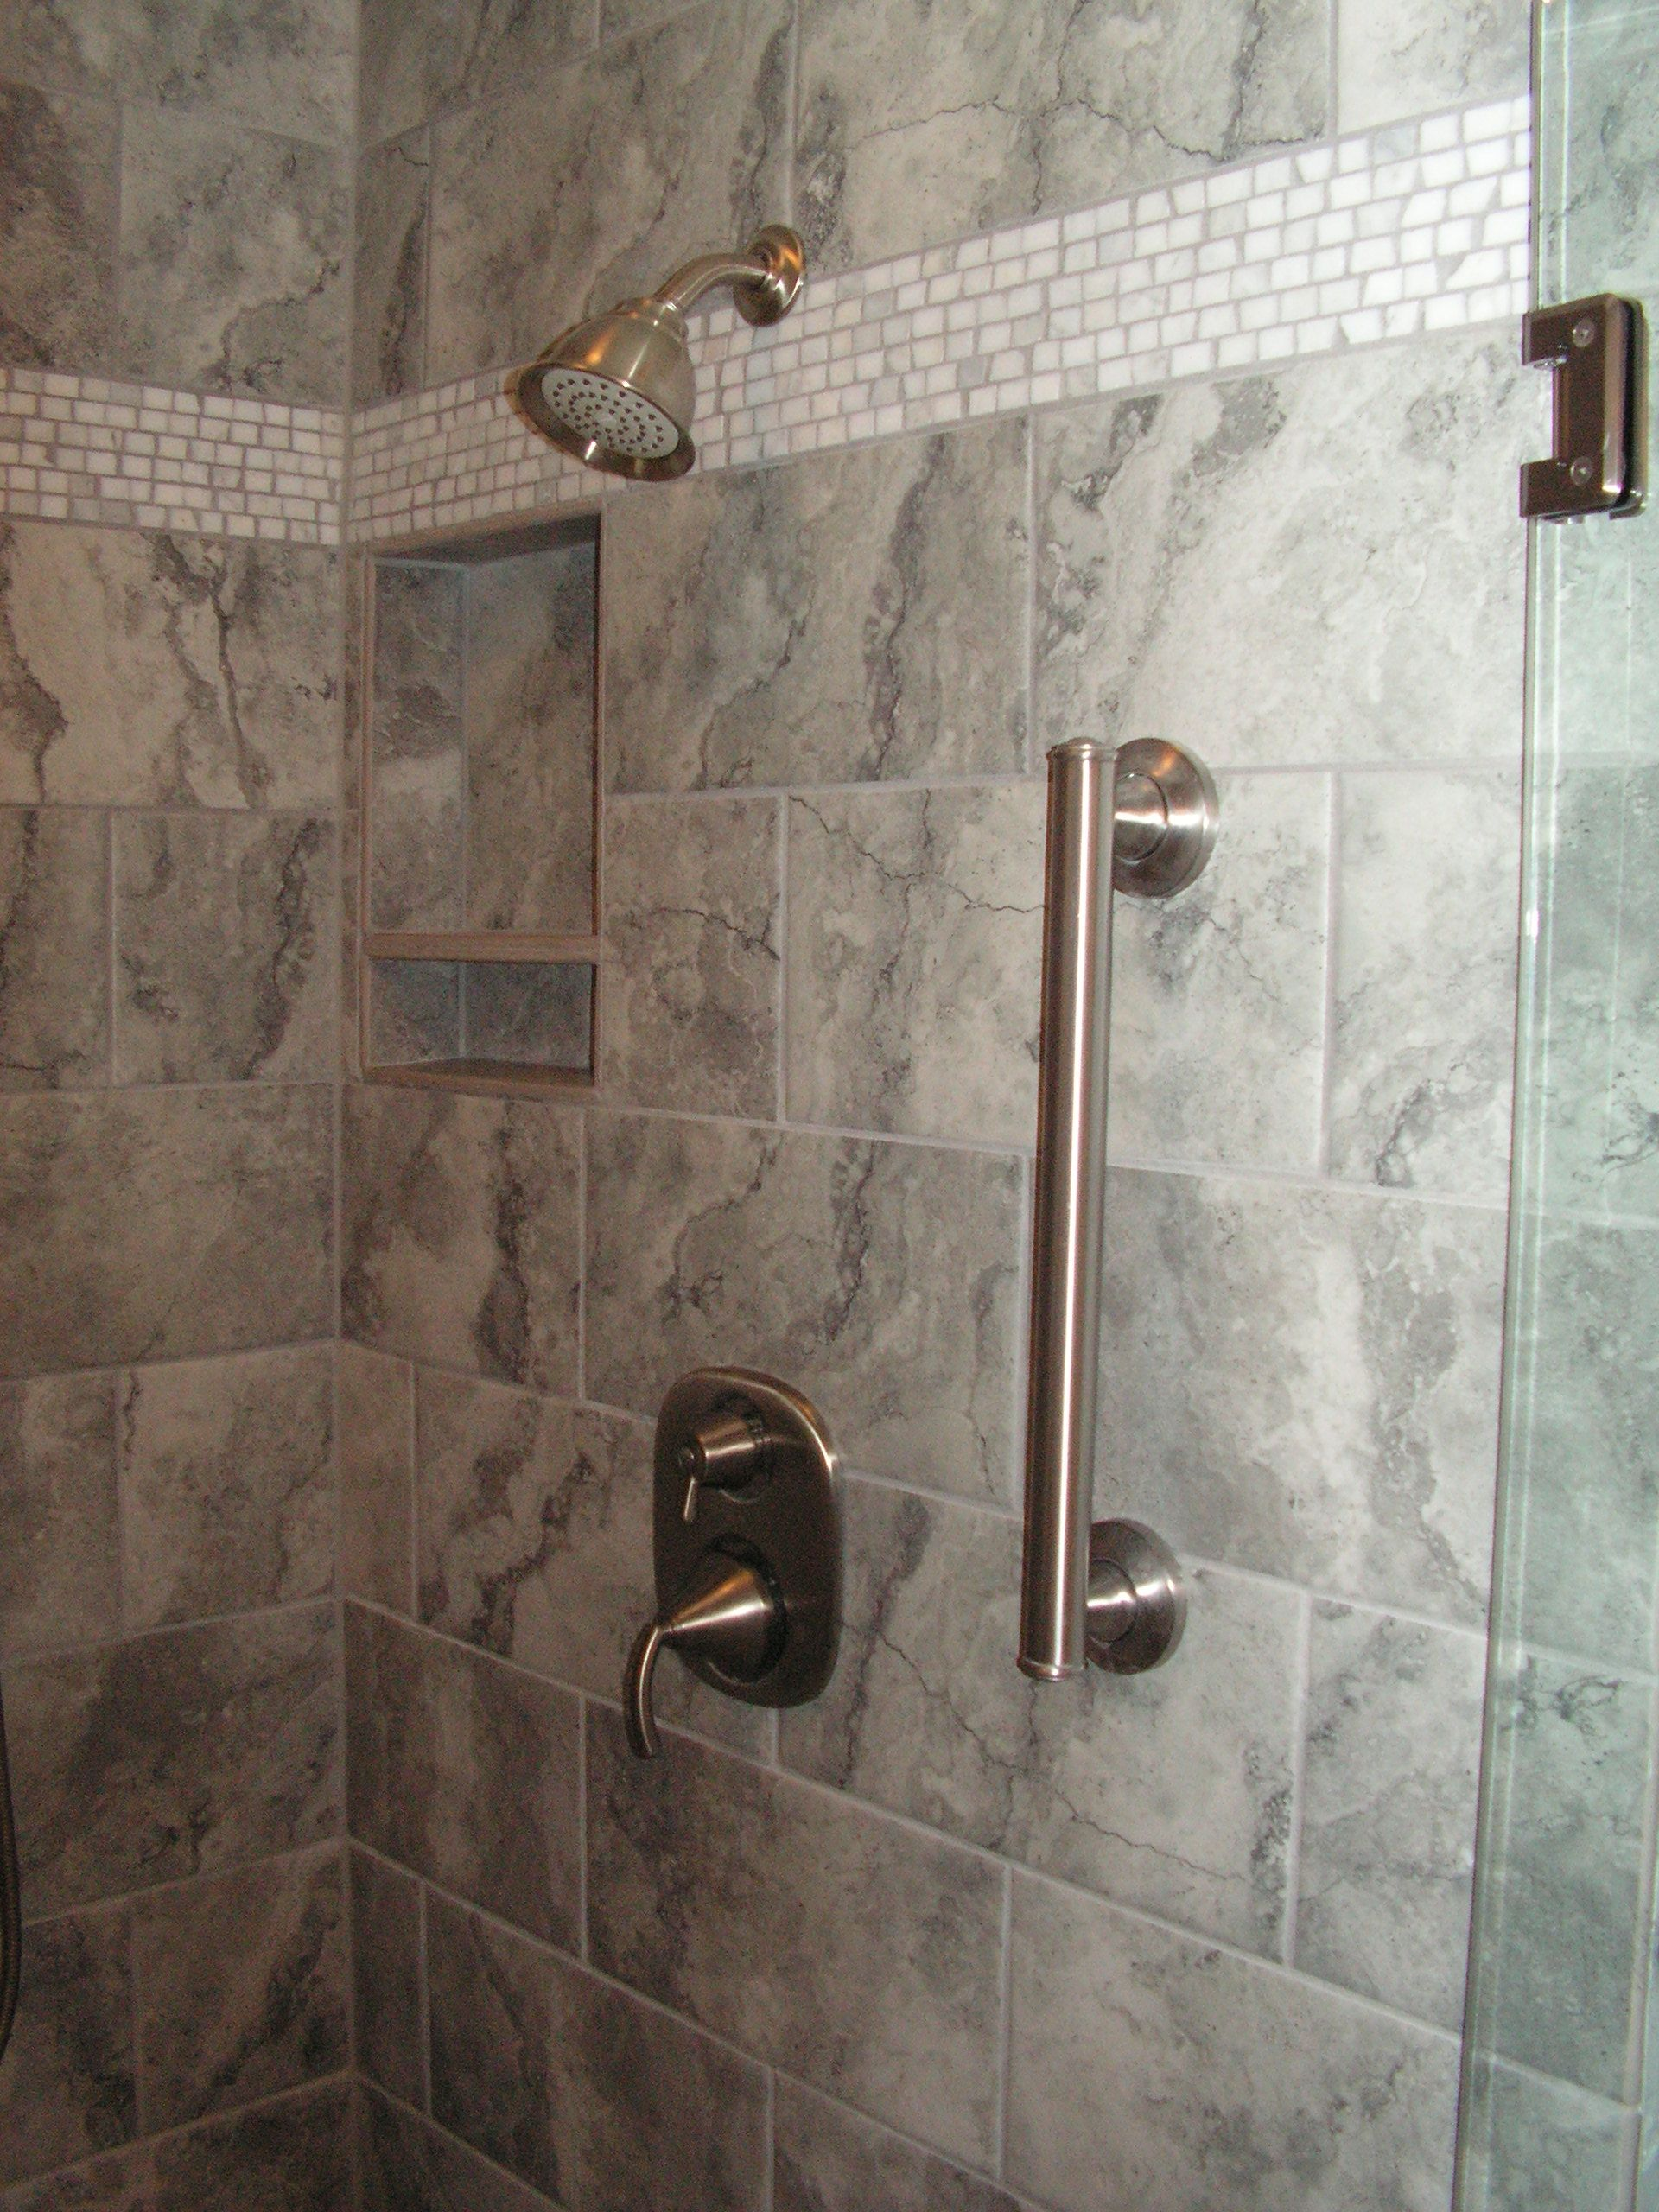 Shower remodel close up showing recessed shower caddie and grab bar ...